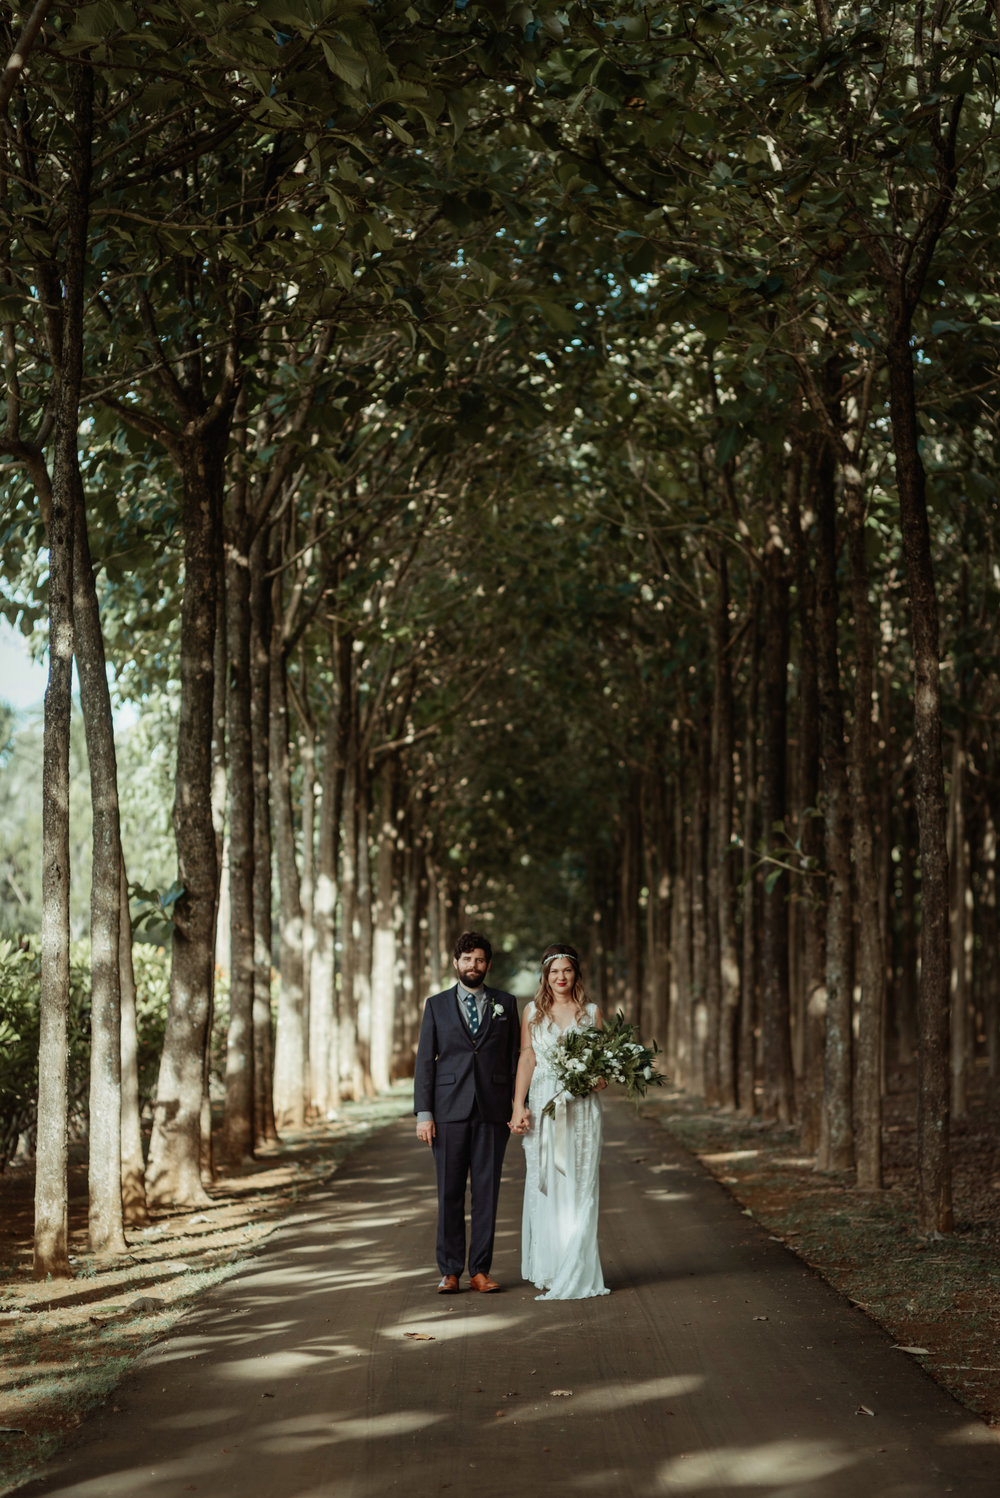 A Beautiful Couple at One of Our Beautiful Elopement Venues